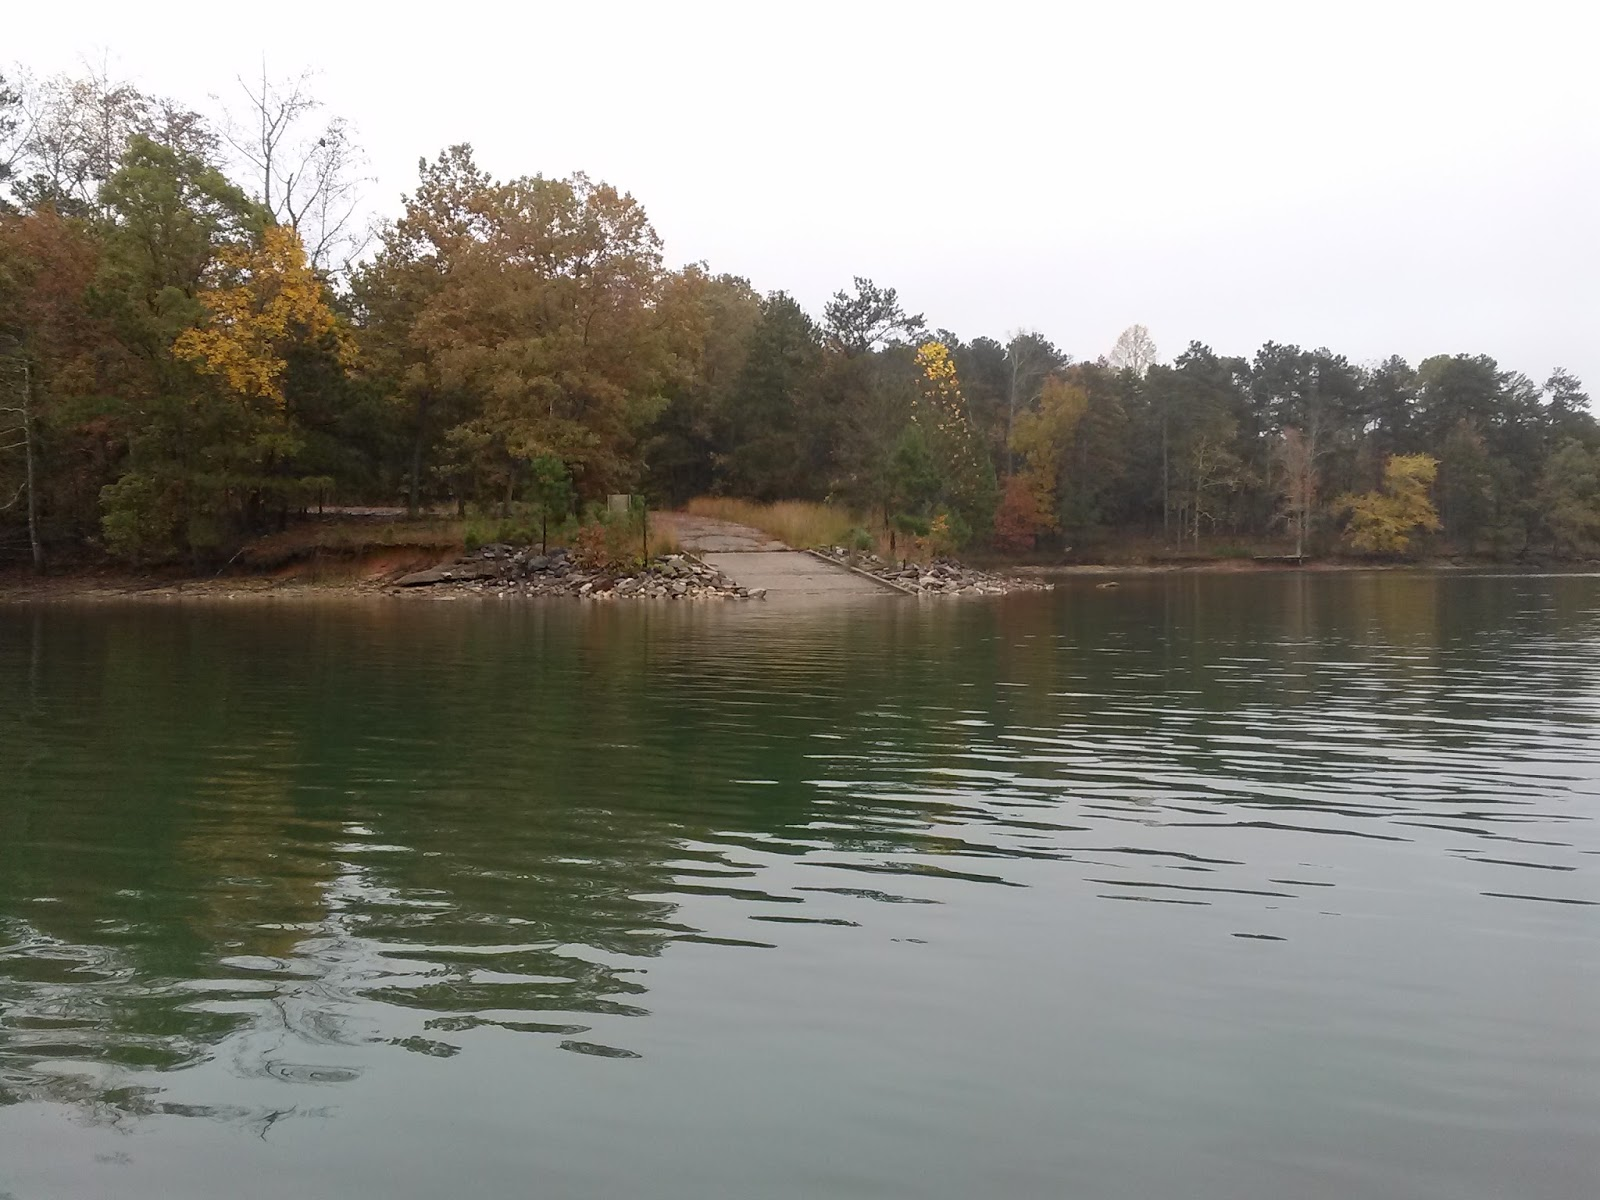 Yakdawg fishing early november kayak fishing on lake lanier for Lake lanier fishing spots